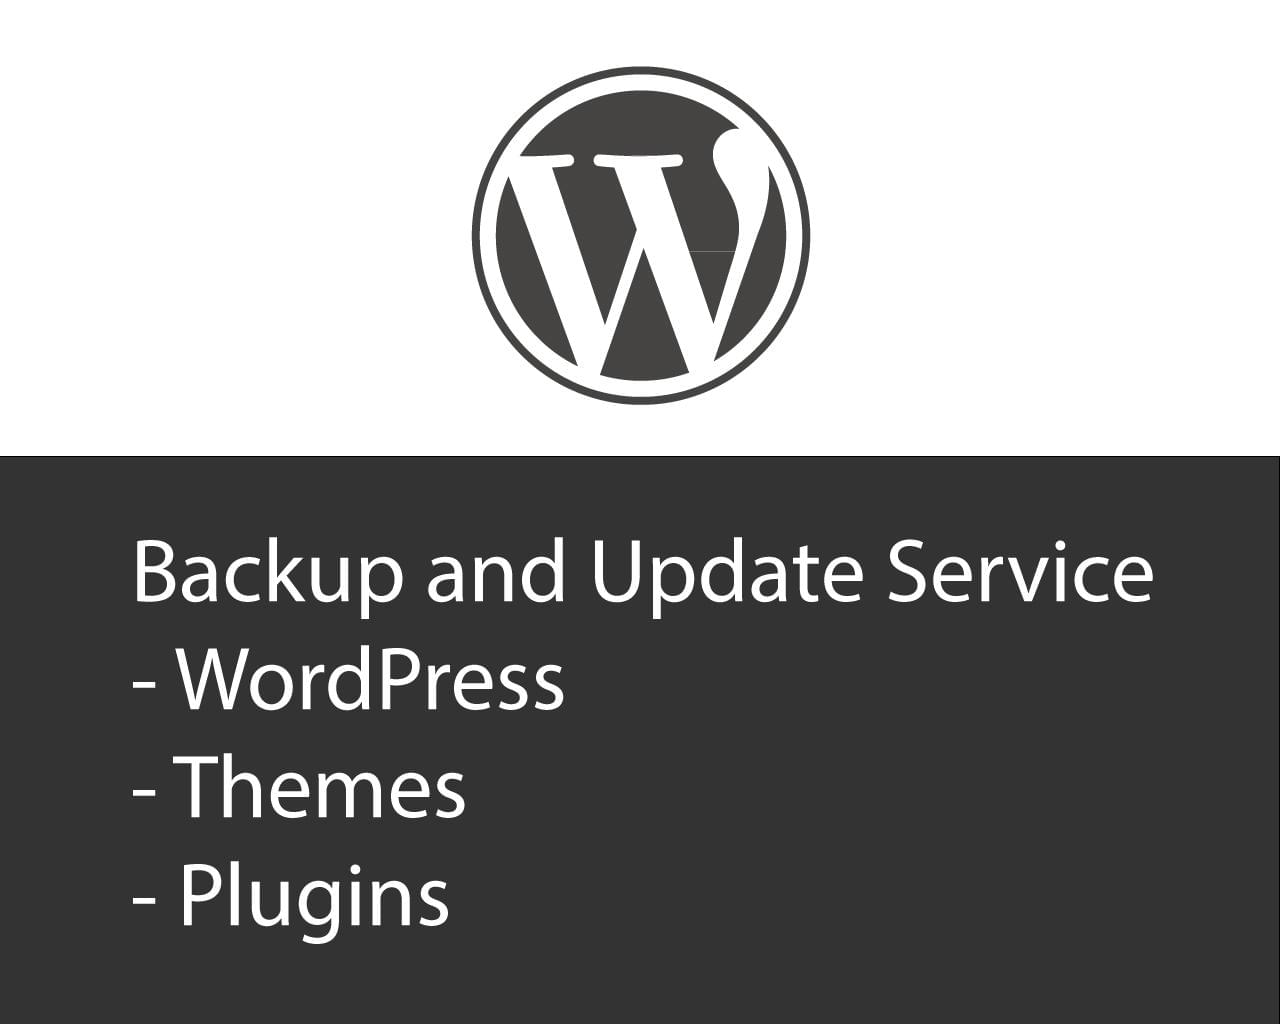 WordPress Theme + Plugins Backup and Update Service by subhasmruti - 111023